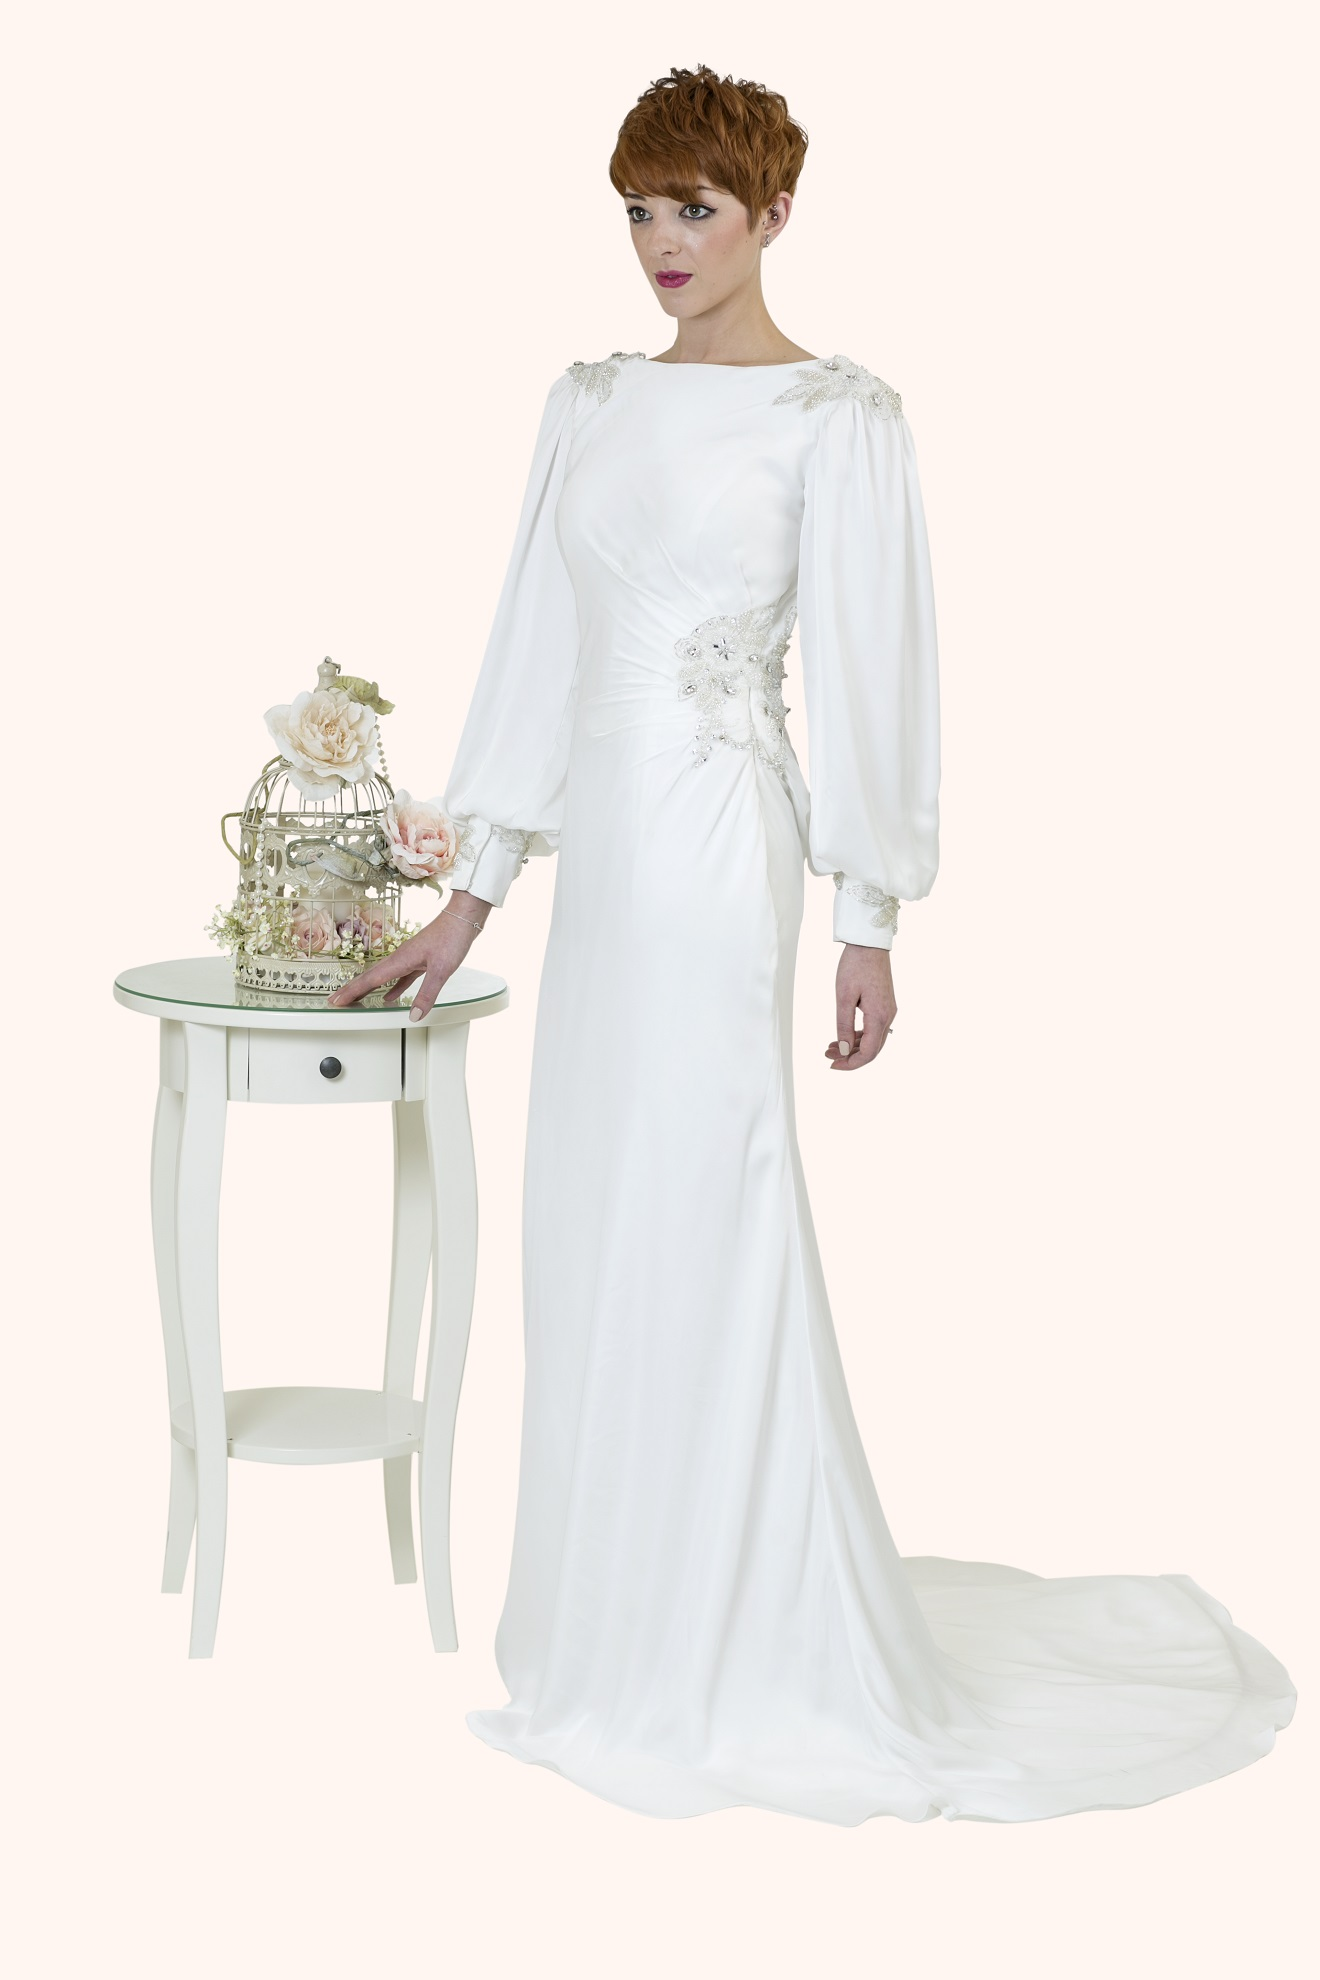 Isabella - Great Gatsby Wedding Dress Design